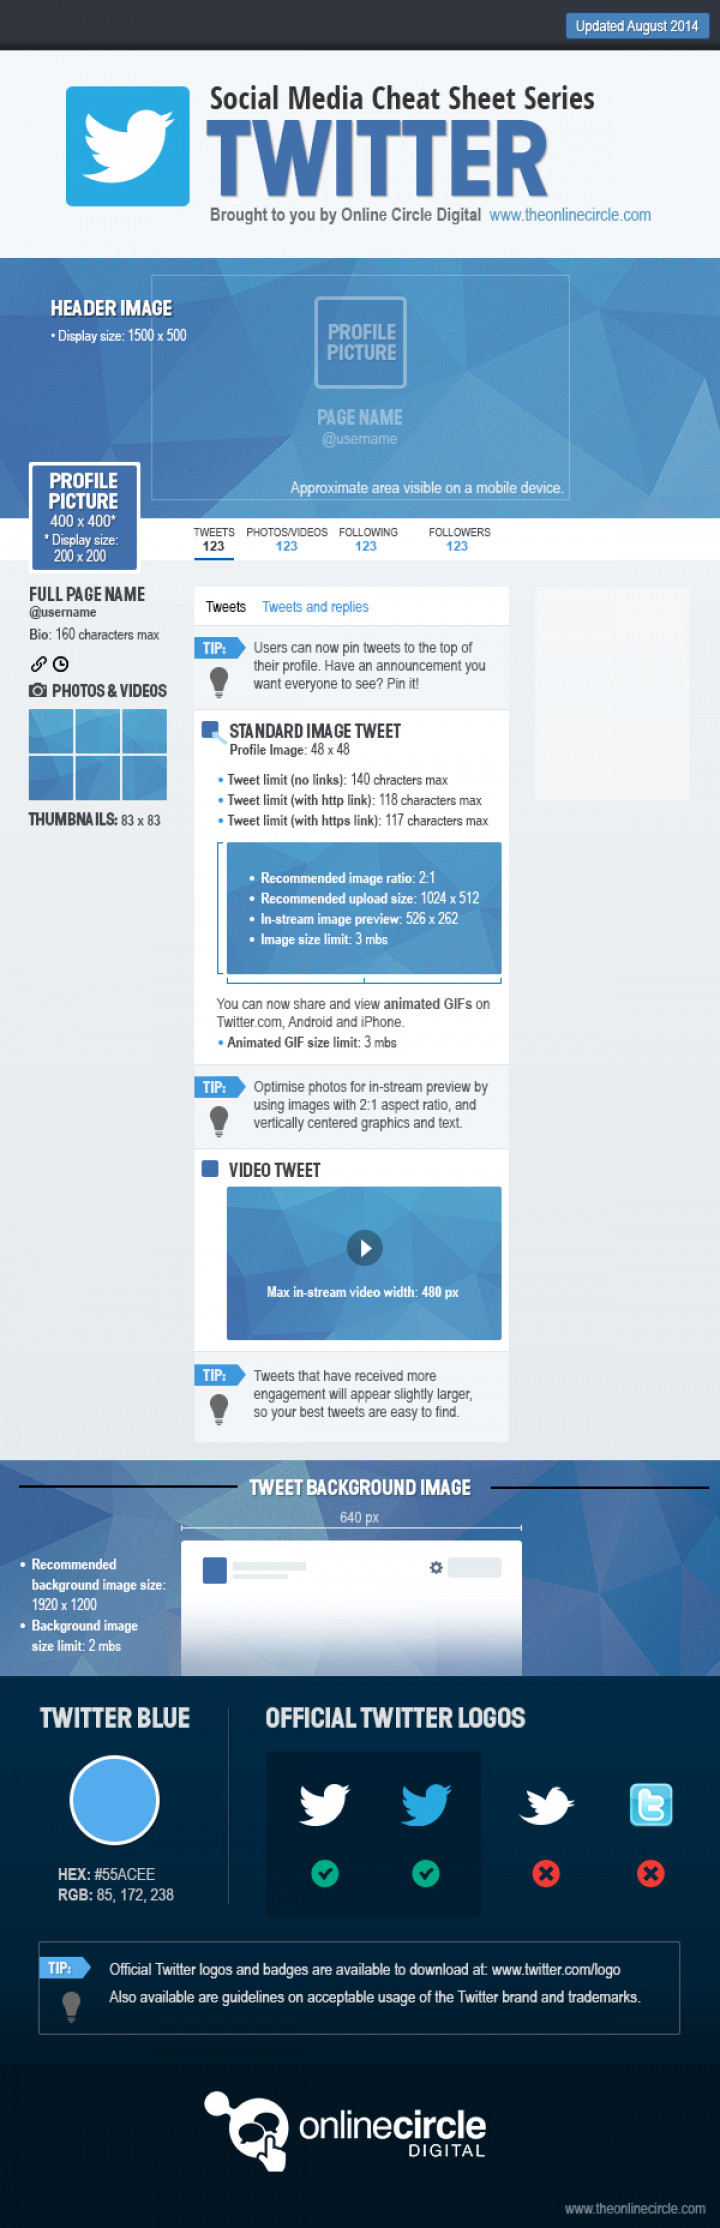 Twitter Sizes and Dimensions Cheat Sheet 2014 - Online Circle Digital